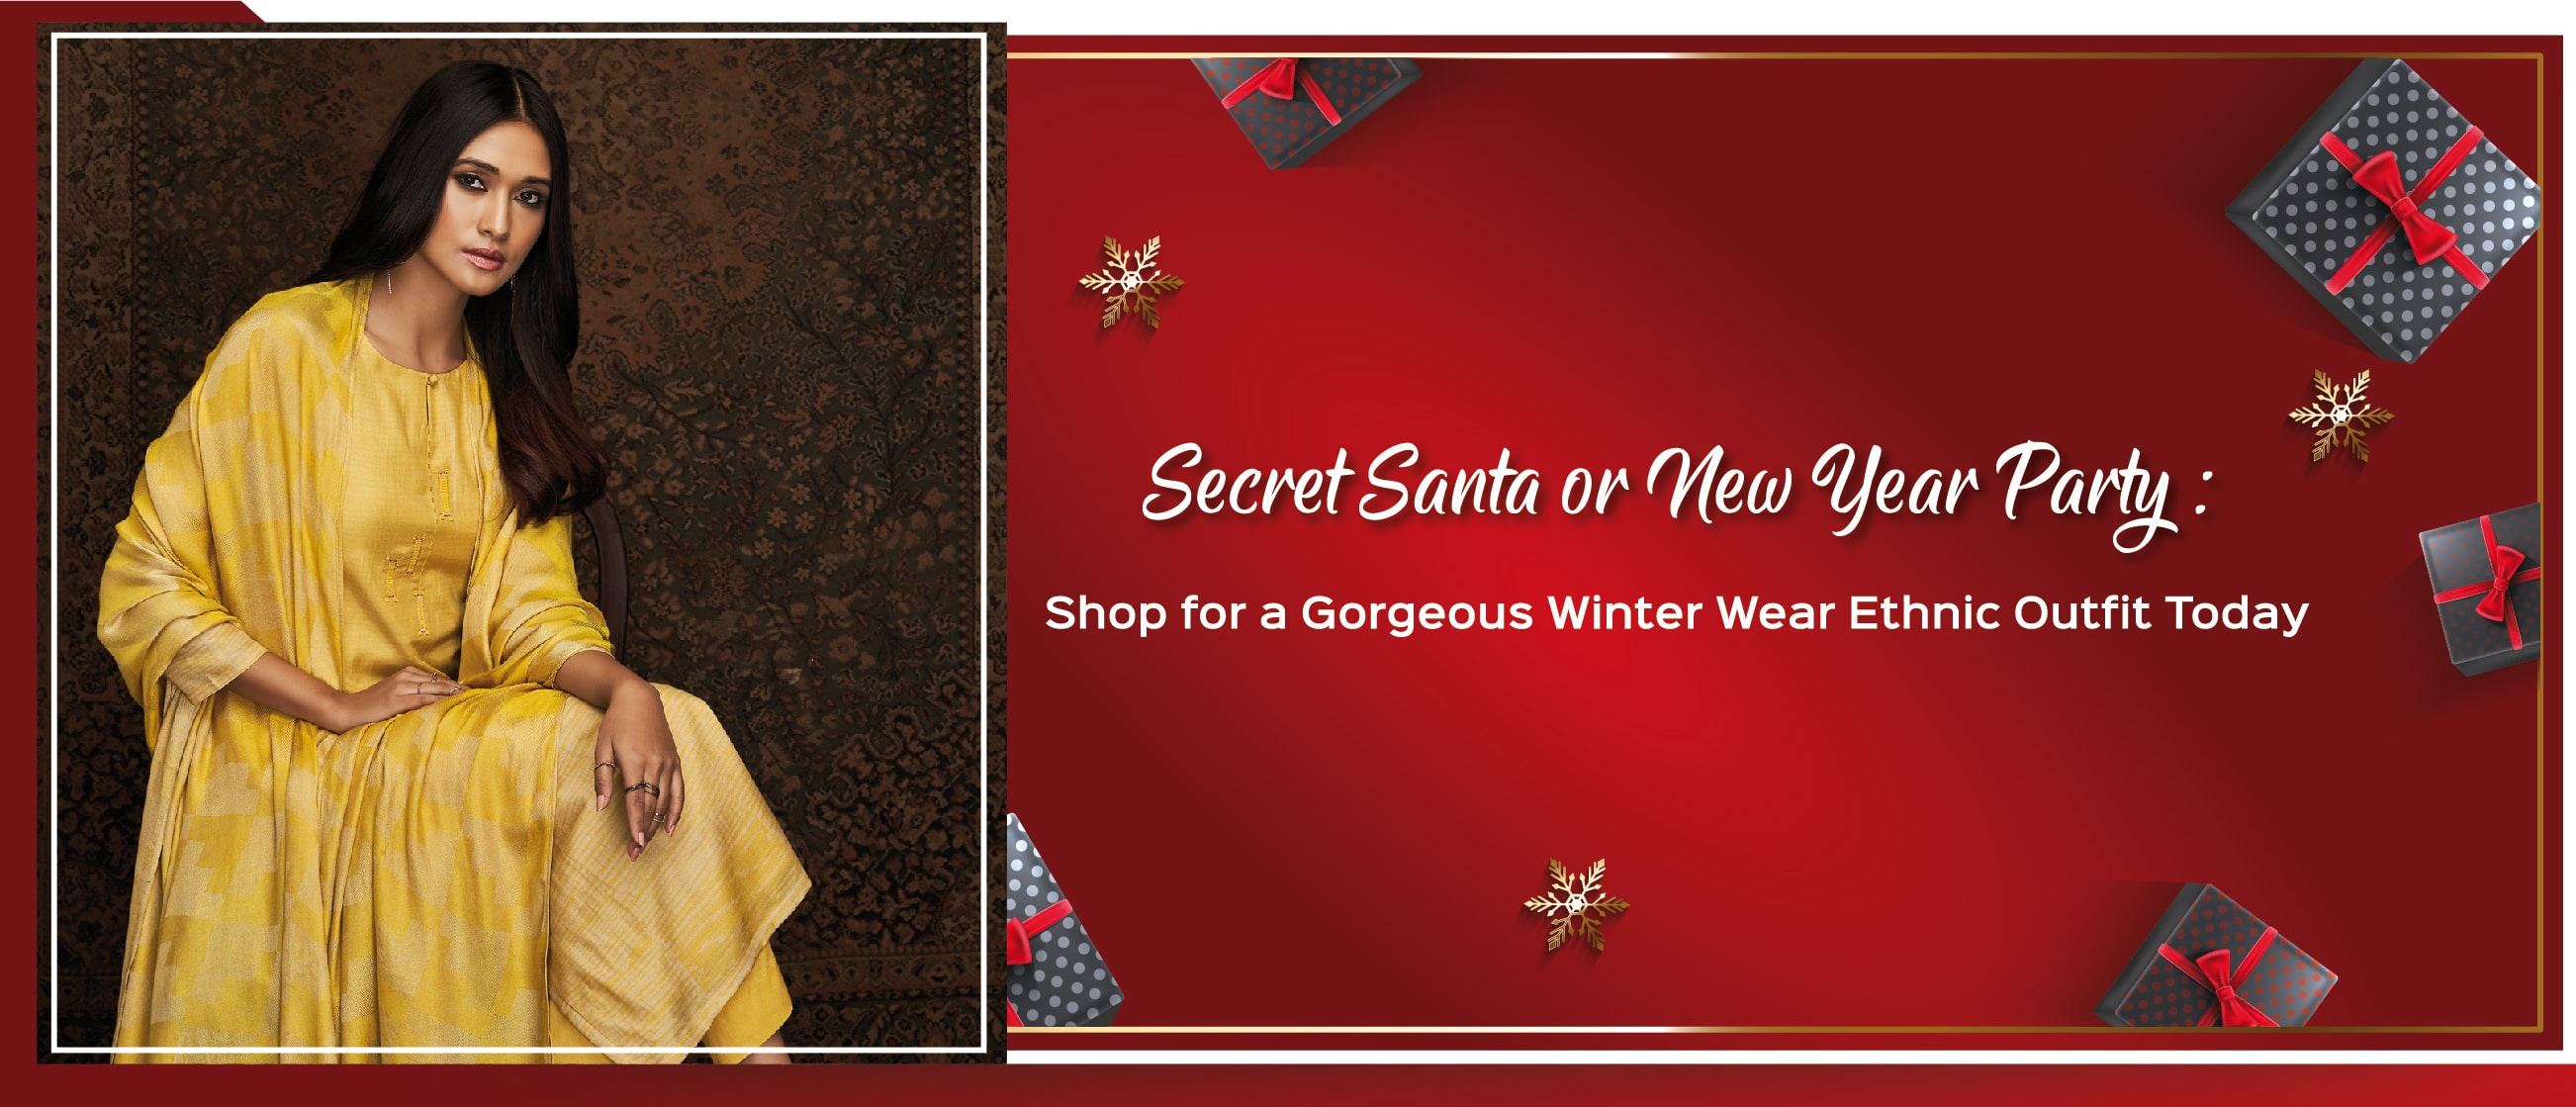 Secret Santa or New Year Party: Shop for a Gorgeous Winter Wear Ethnic Outfit Today